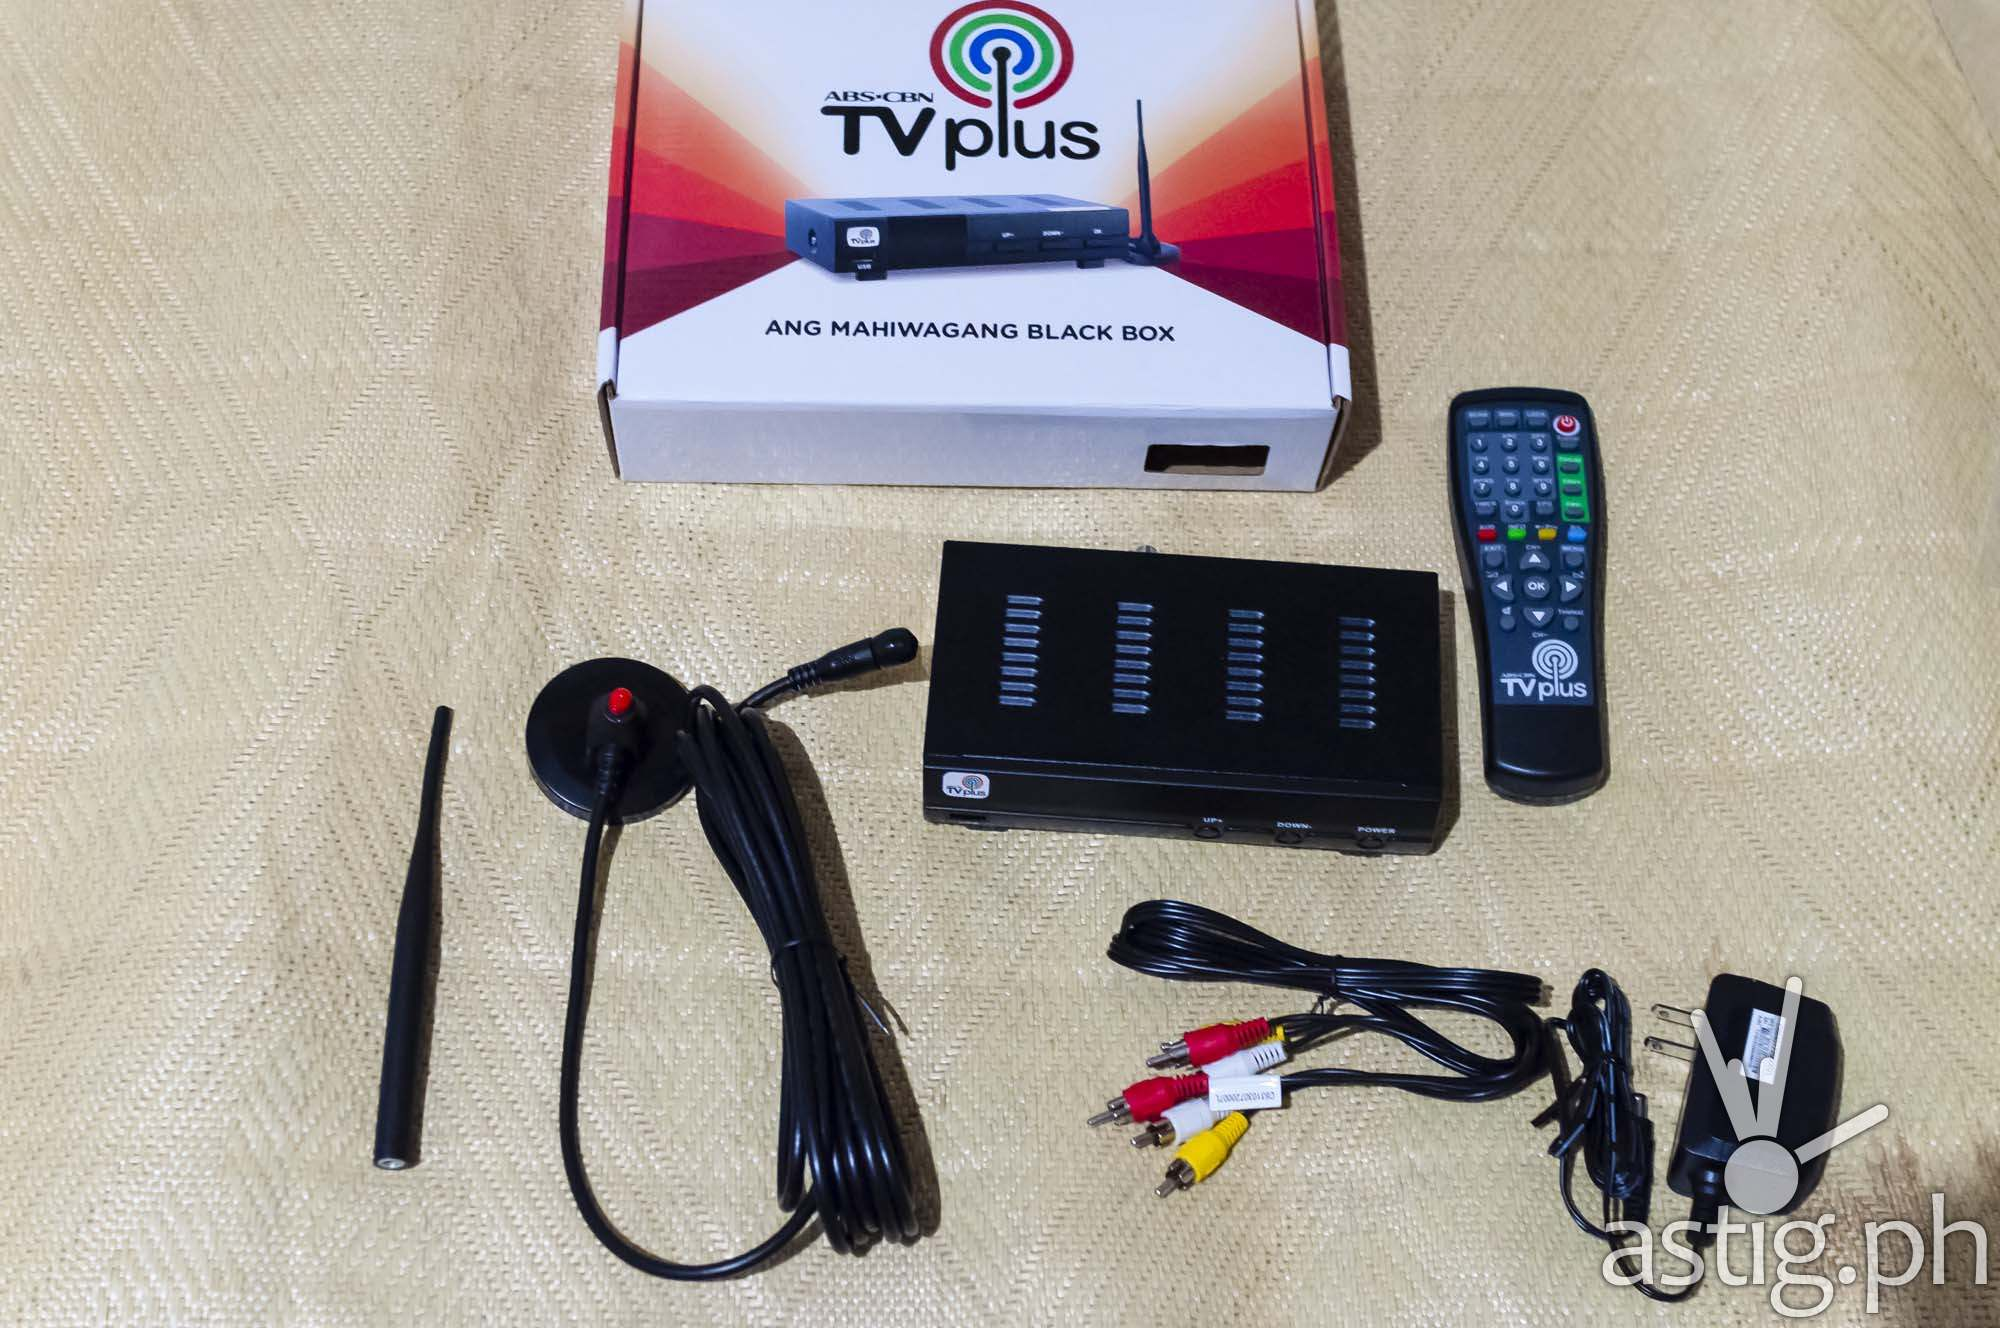 ABS-CBN TVplus unboxing contents